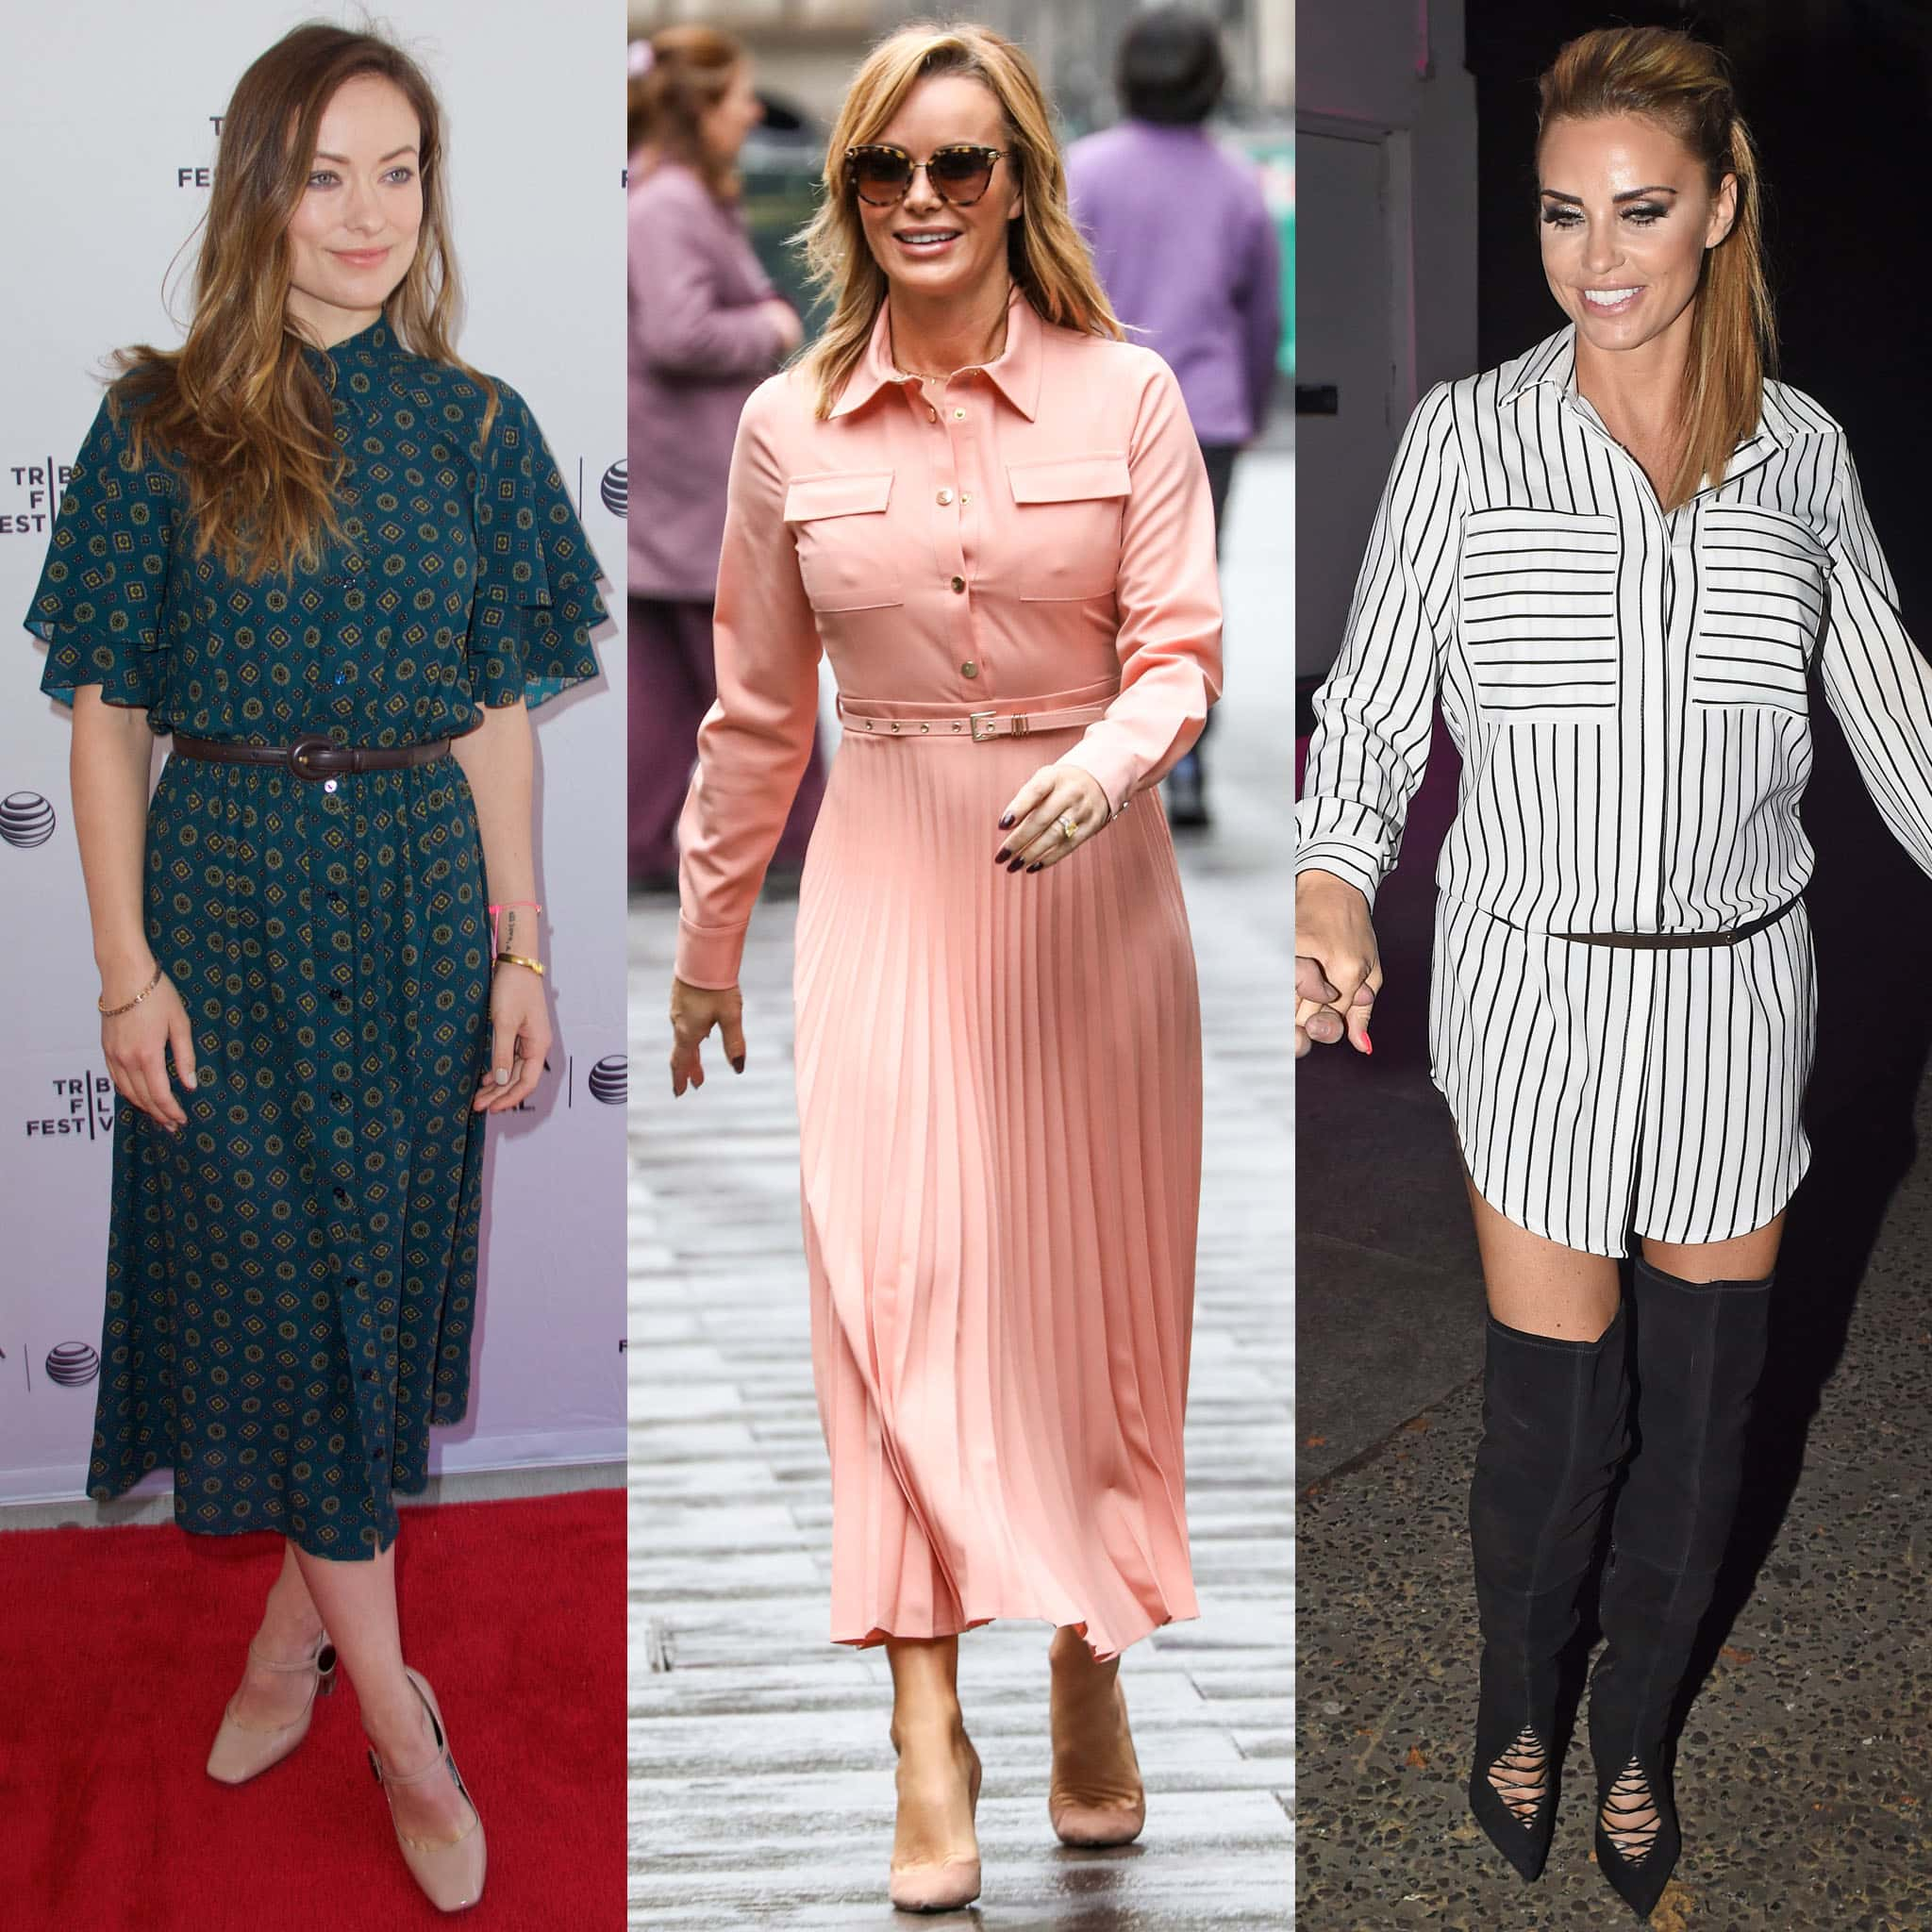 Olivia Wilde, Amanda Holden, and Katie Price show the versatility of shirtdresses with heels and boots